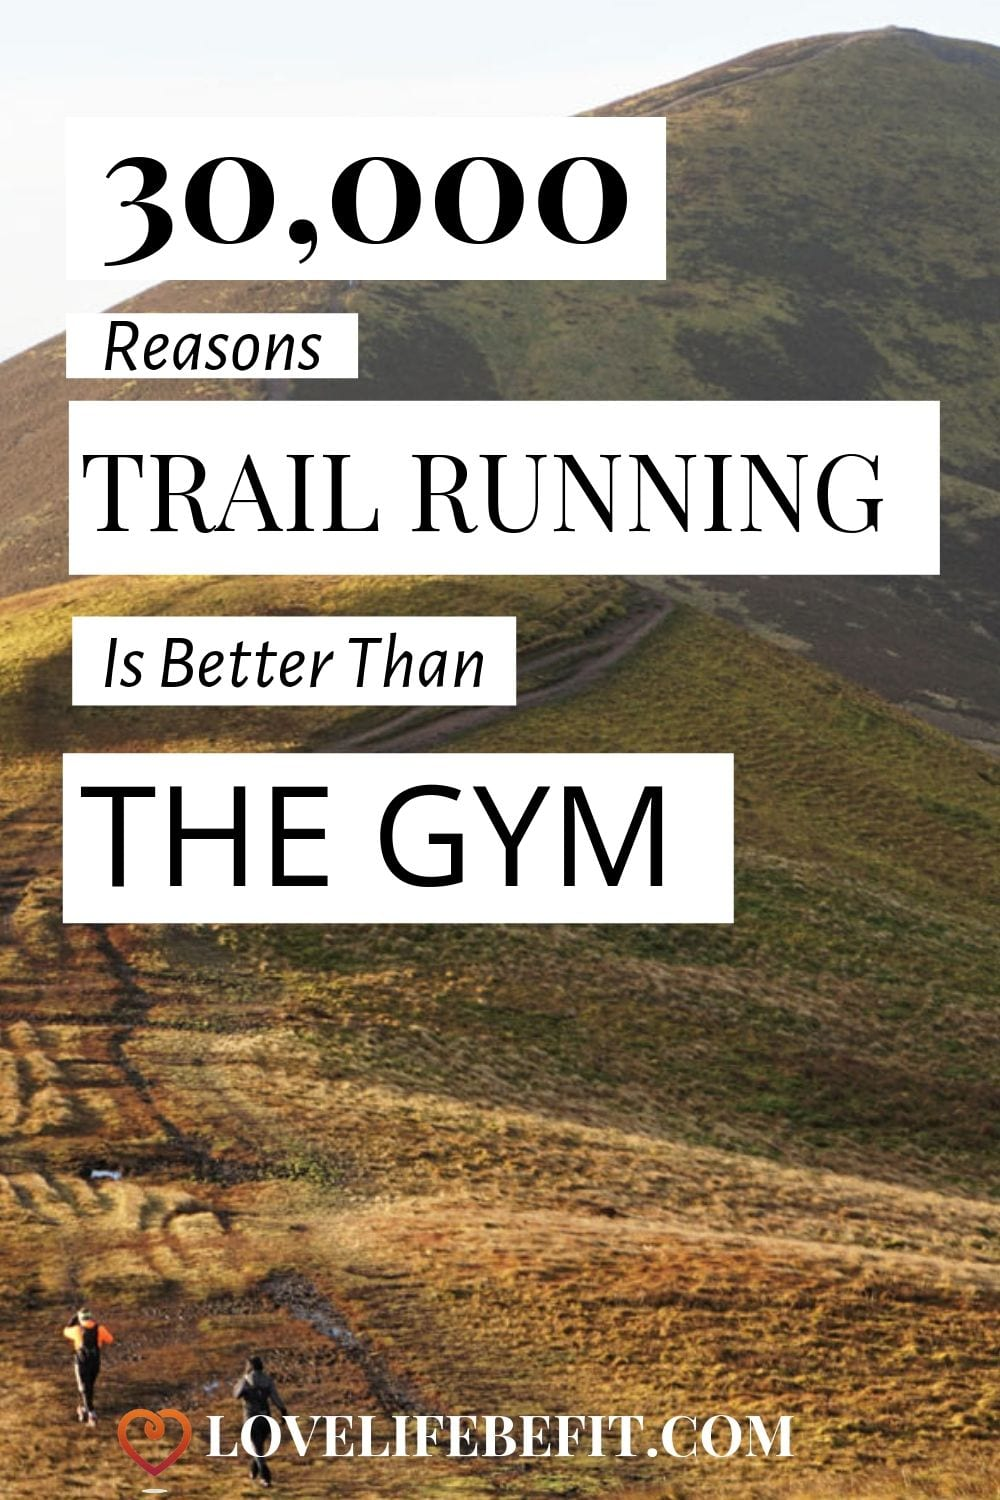 Trail running works your core, leg muscles and upper body. Yes I did say upper body! 30,000 steps in the Pentlands yesterday and my arms are tired! Read on to find out why trail running is better than the gym. #trailrunning